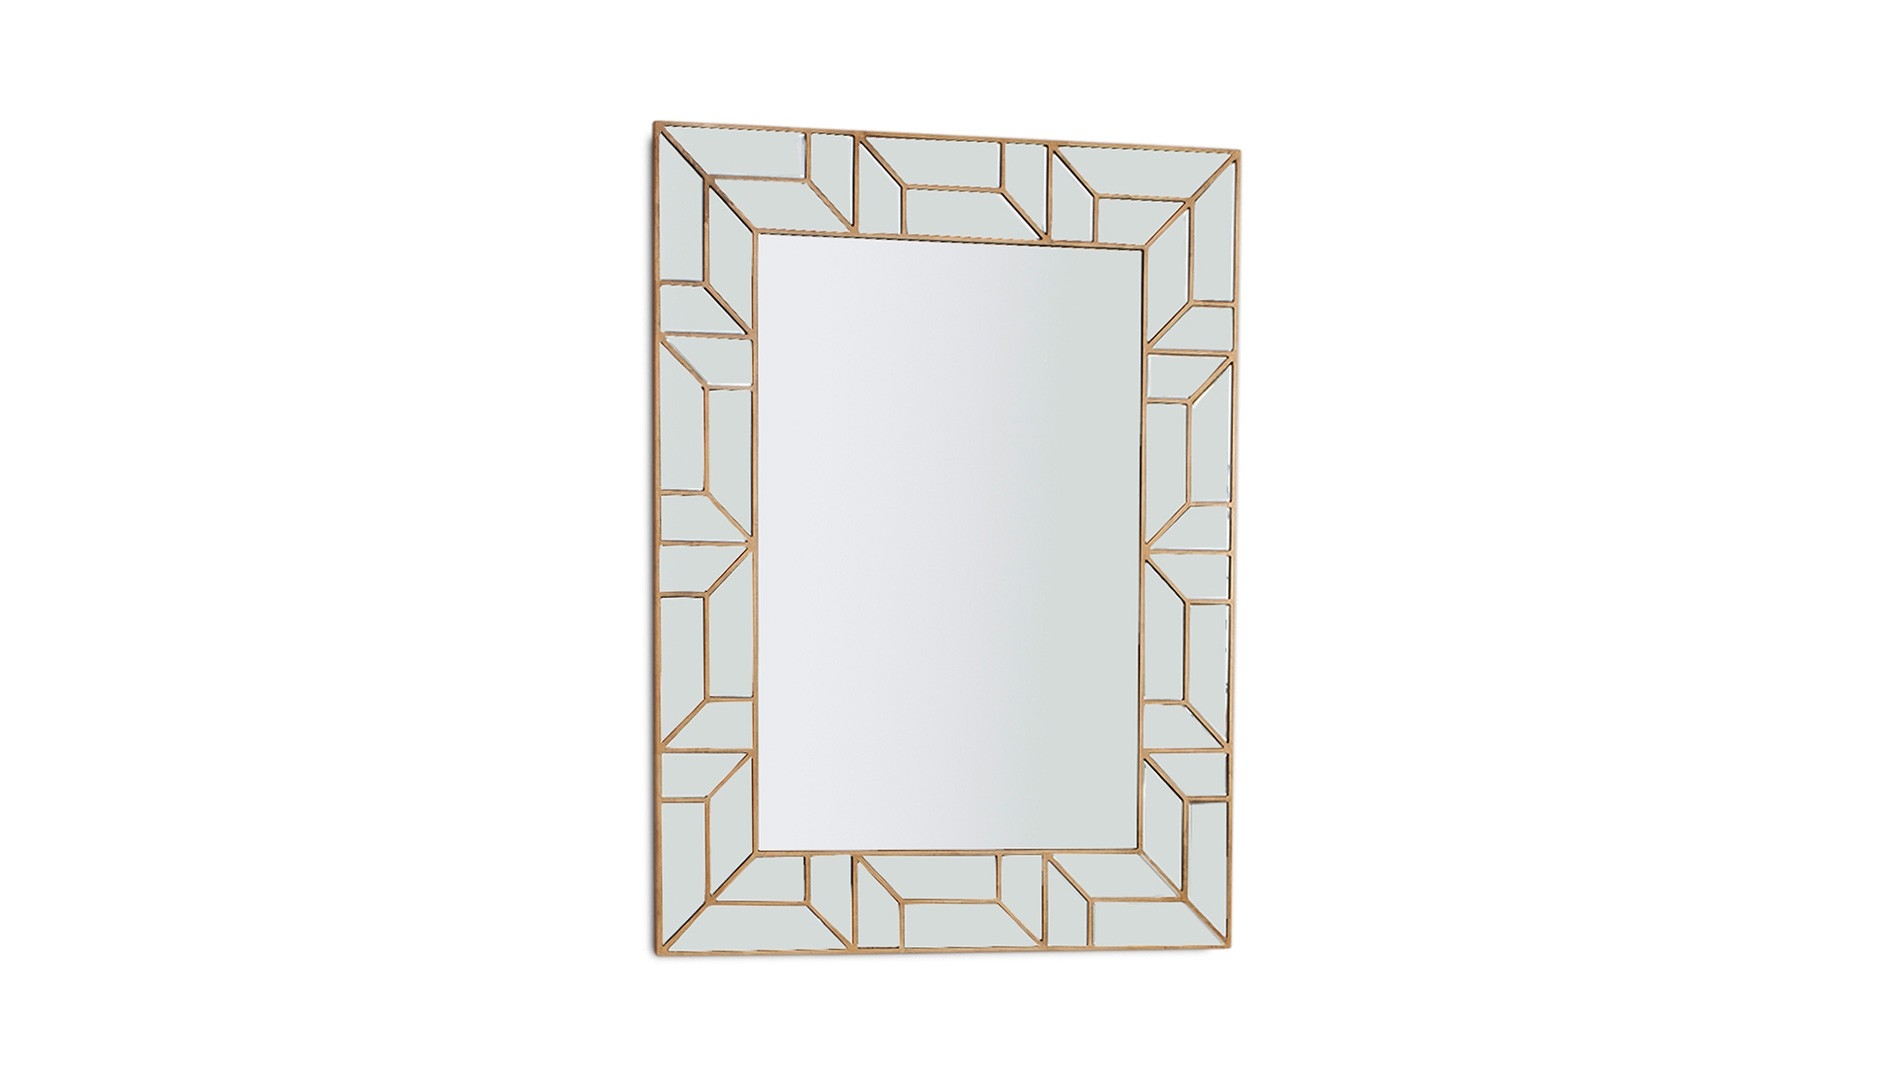 Verbier Rectangular Mirror Buy Online At Luxdeco Inside Buy A Mirror (Image 15 of 15)